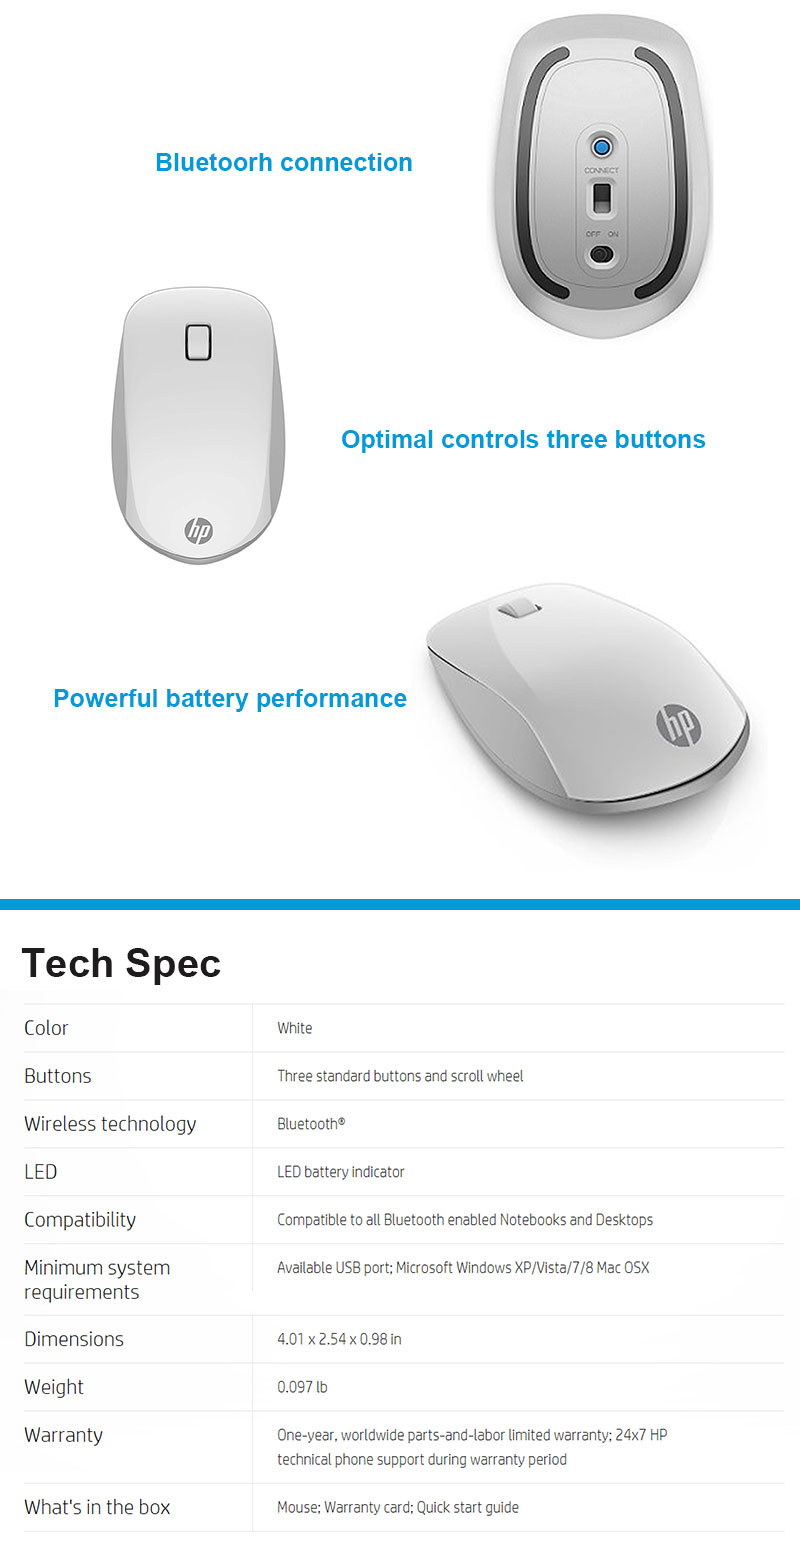 genuine hp z5000 bluetooth wireless mouse ultra slim 3 hp mouse hp mouse driver hp wireless mouse hp bluetooth mouse hp wireless keyboard and mouse mouse wireless mouse hp mouse drivers computer mouse logitech